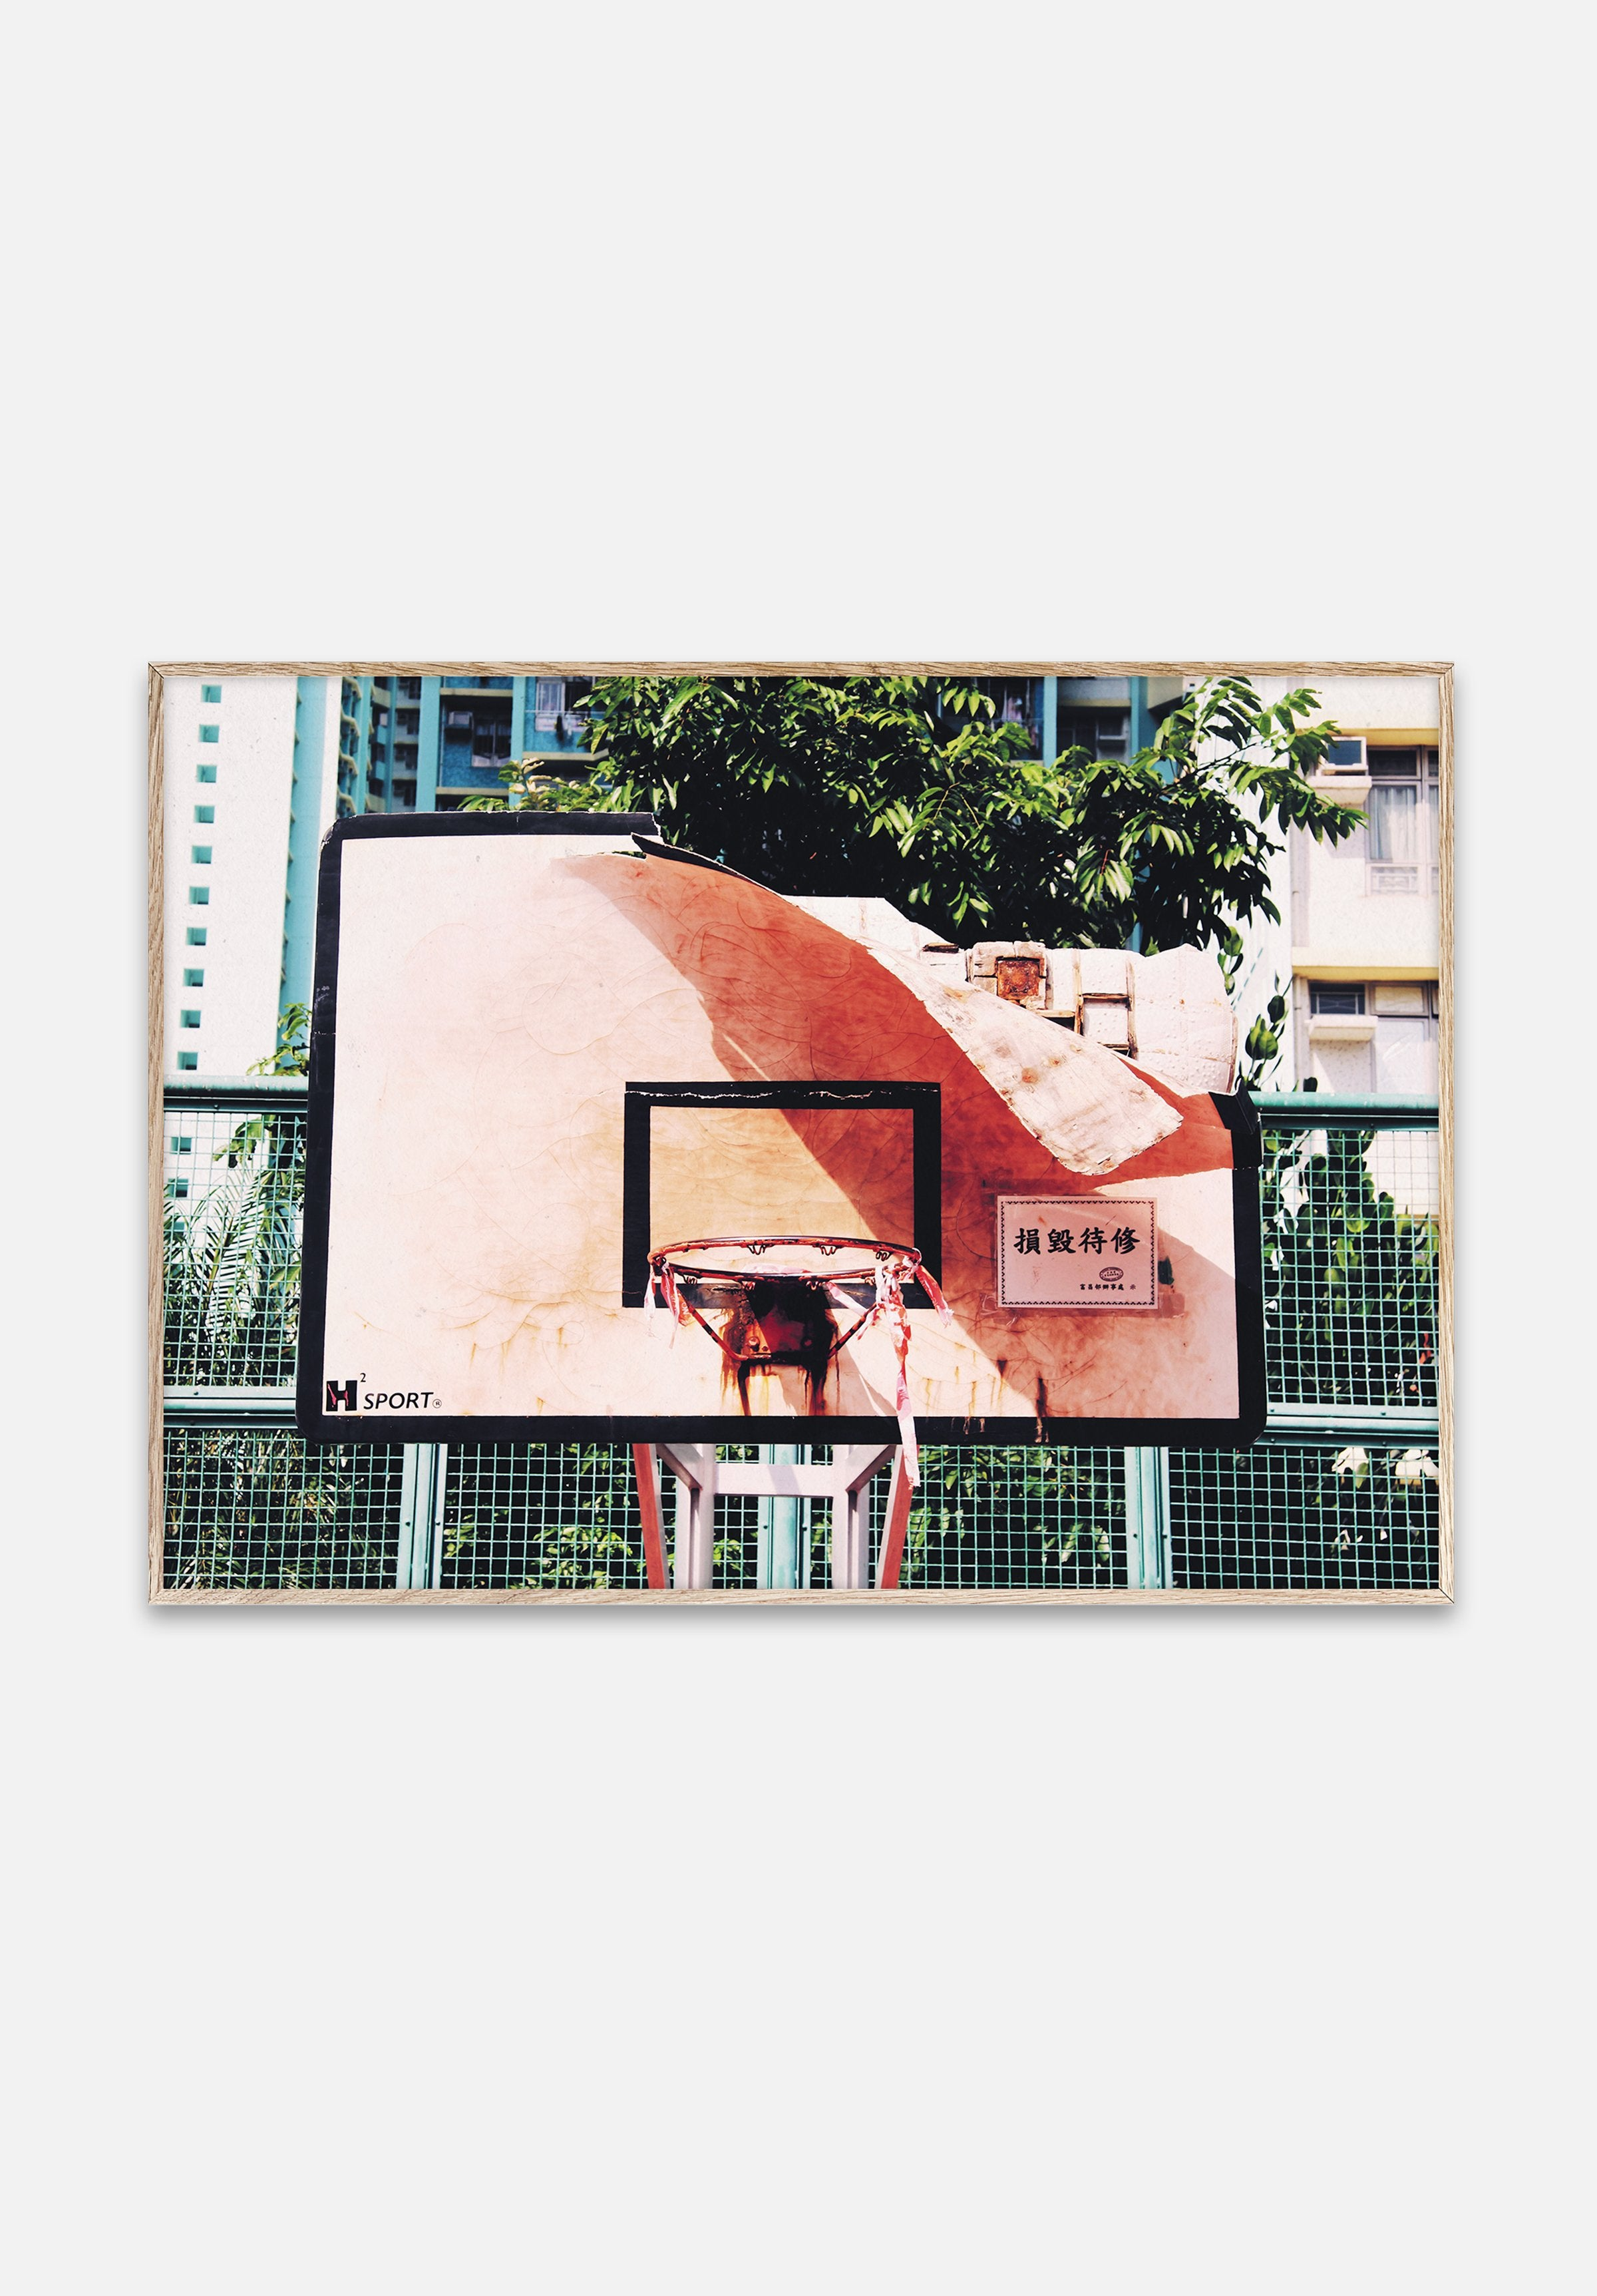 Cities Of Basketball 06 — Hong Kong-Kasper Nyman-Paper Collective-40x30cm-Average